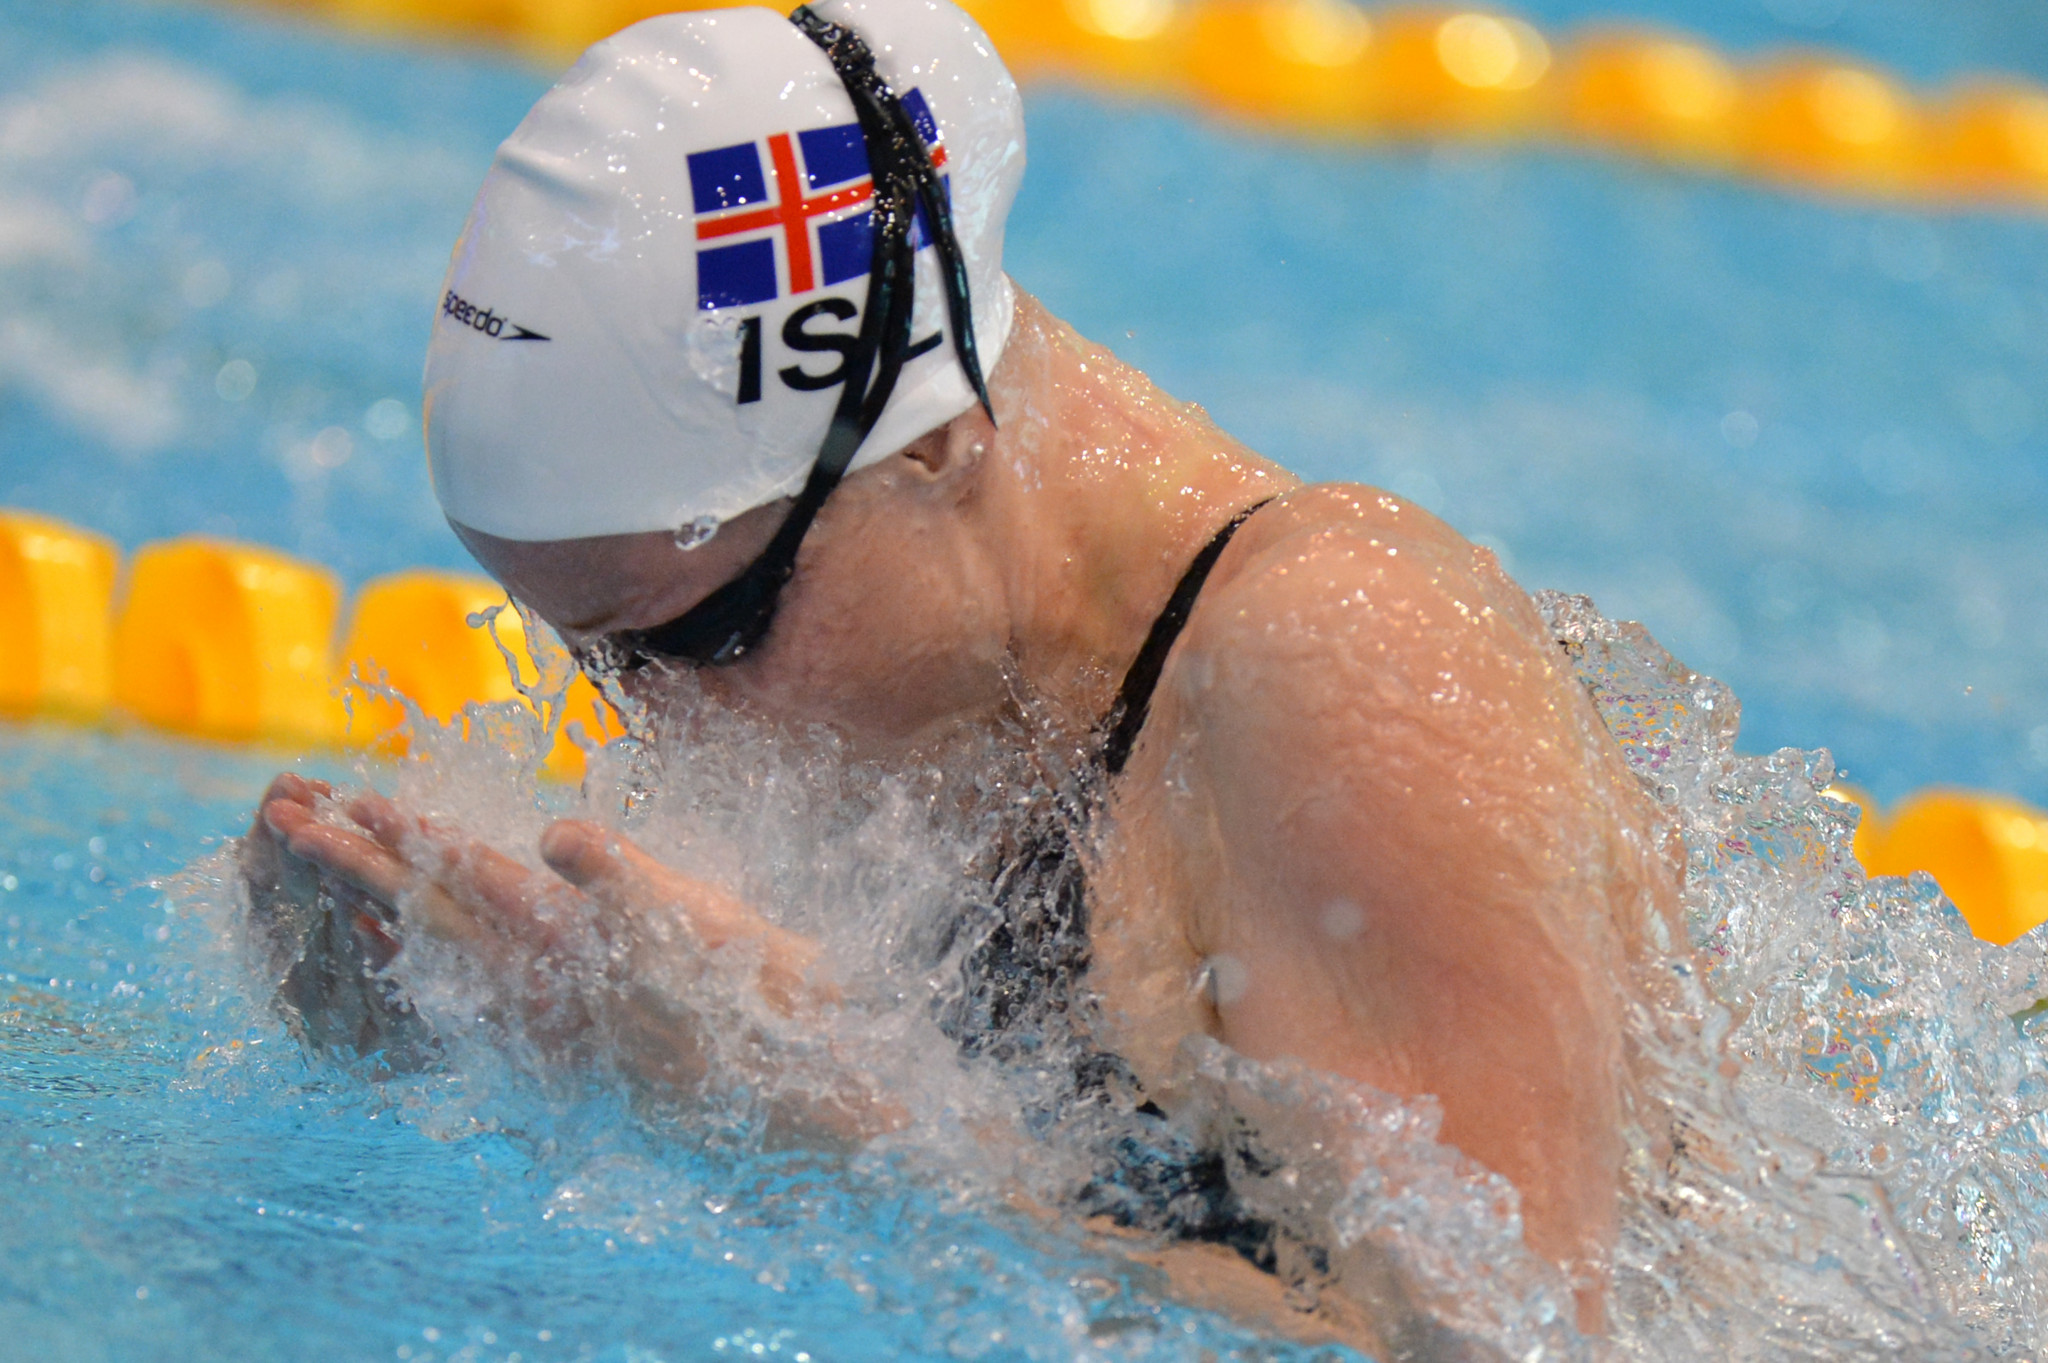 Hrafnhildur Lúthersdóttir is one of Iceland's most successful swimmers ever ©Getty Images